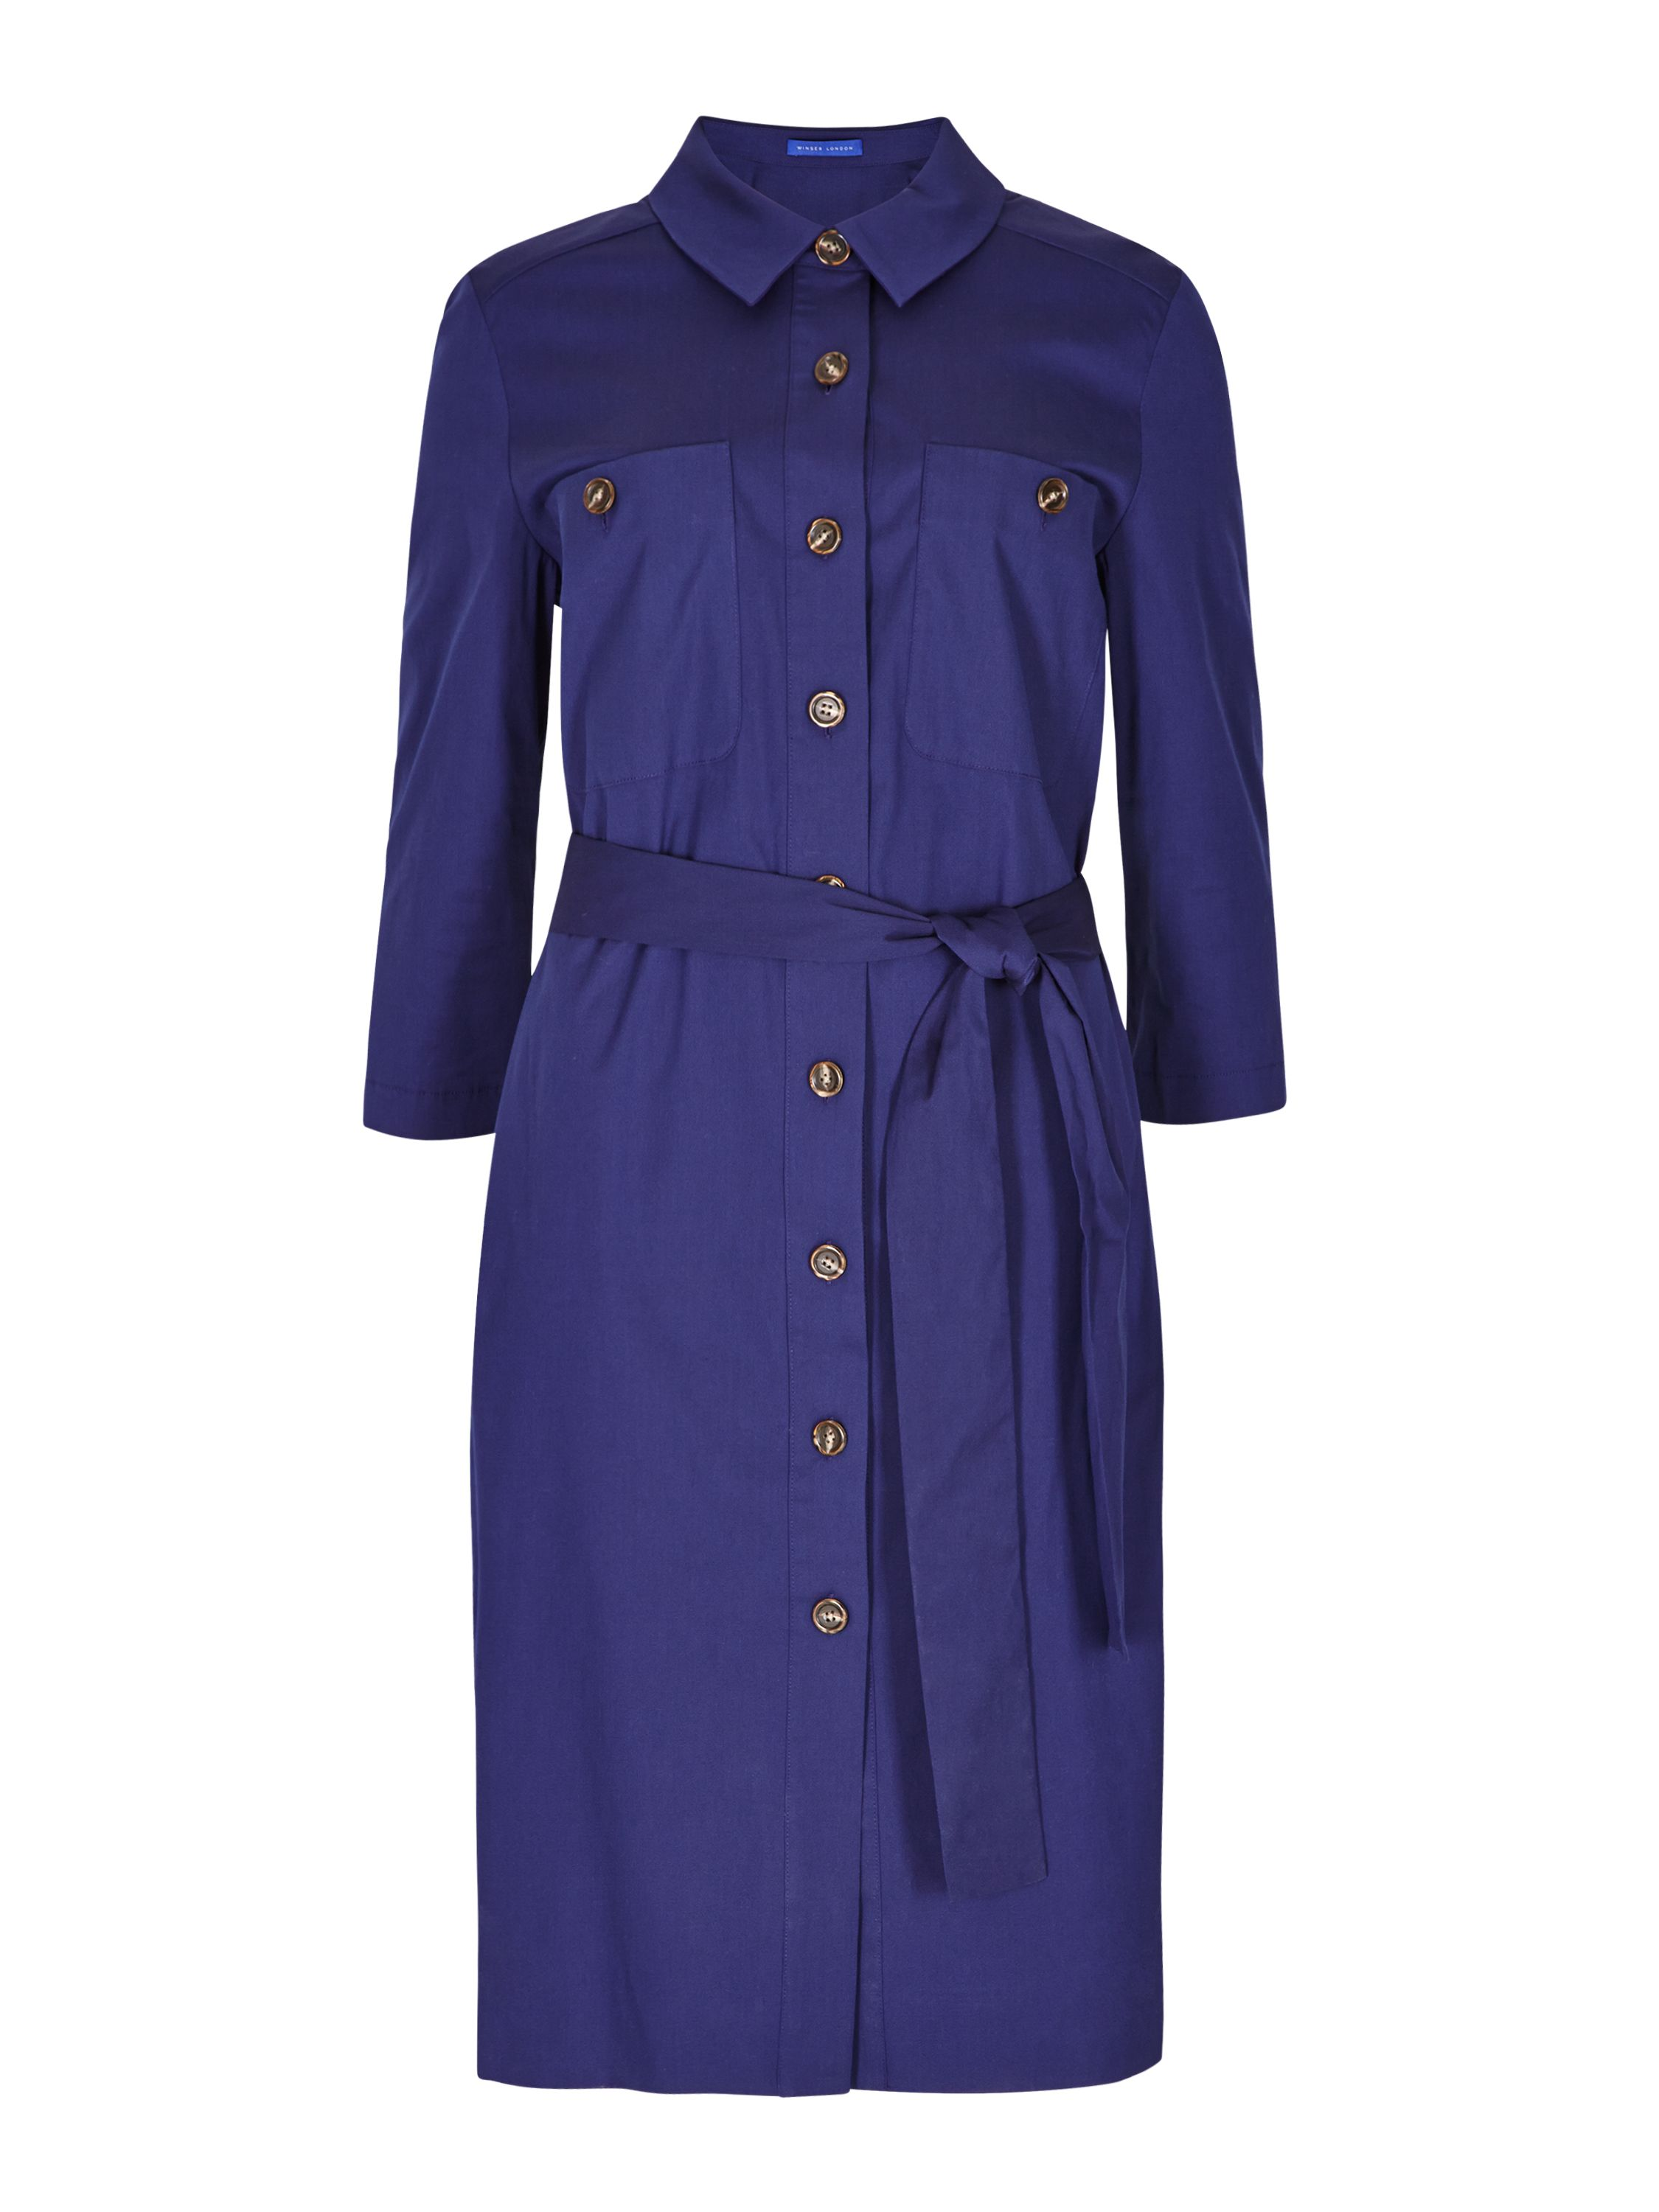 Winser London Cotton Poplin Shirt Dress, Blue